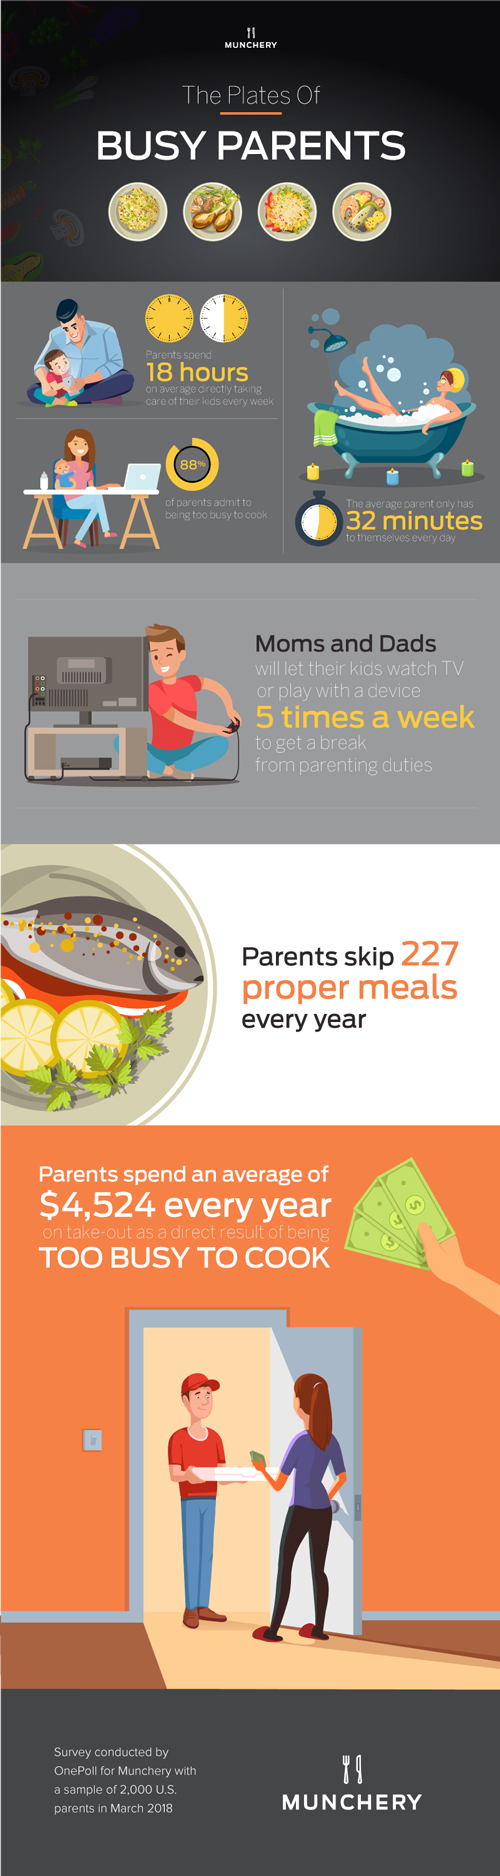 Munchery-Busy-parents-V2.jpg